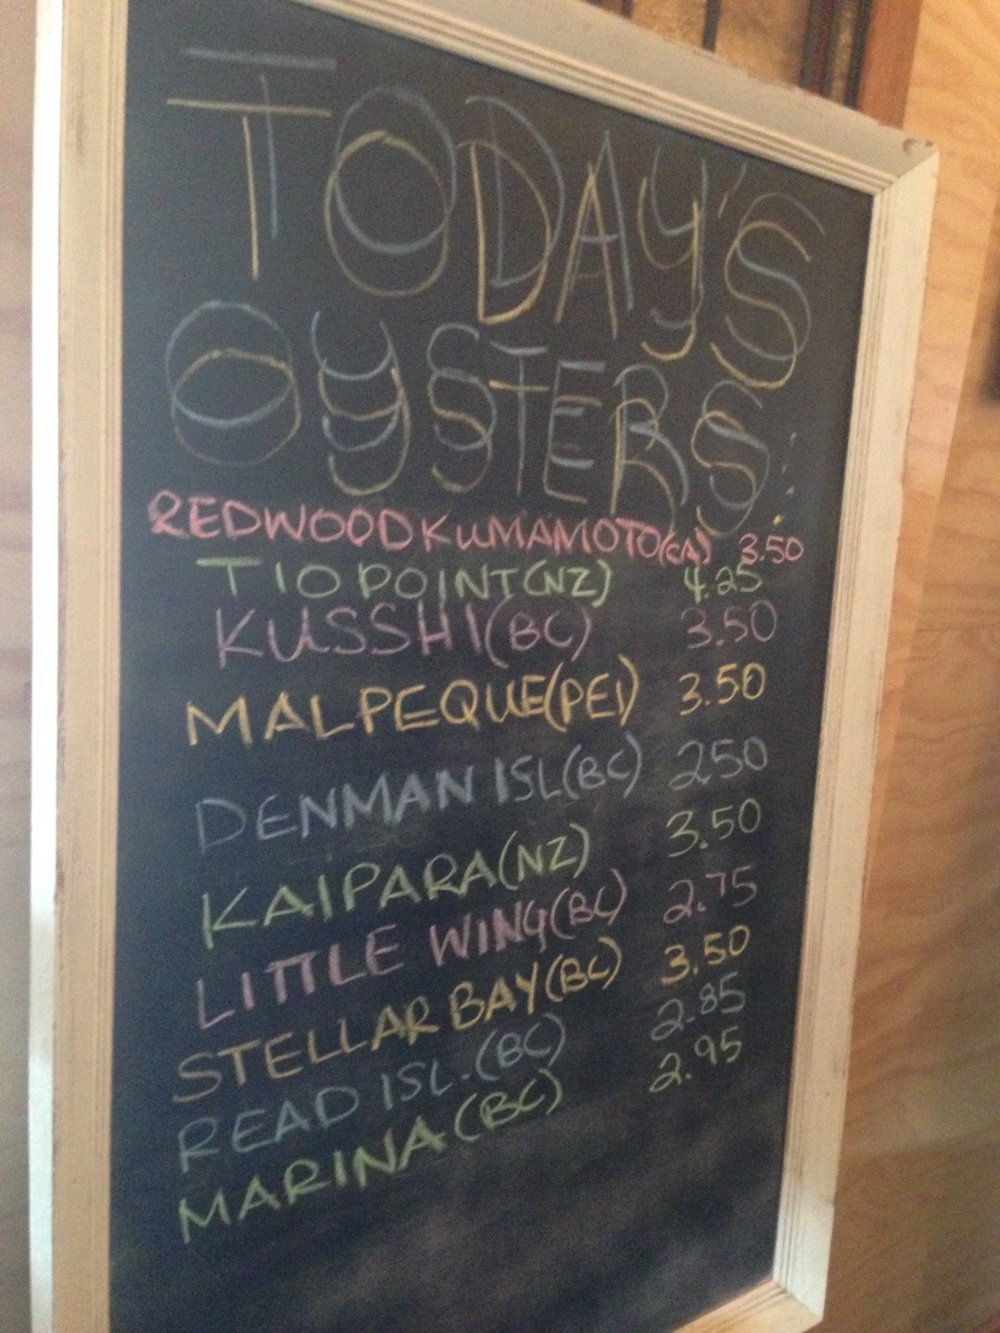 Lots to choose from here, but I know what I'm buying..Kaipara & Tio Point from the winter waters of New Zealand. The other oysters on the menu are mostly spawning and are coming from warm summer waters